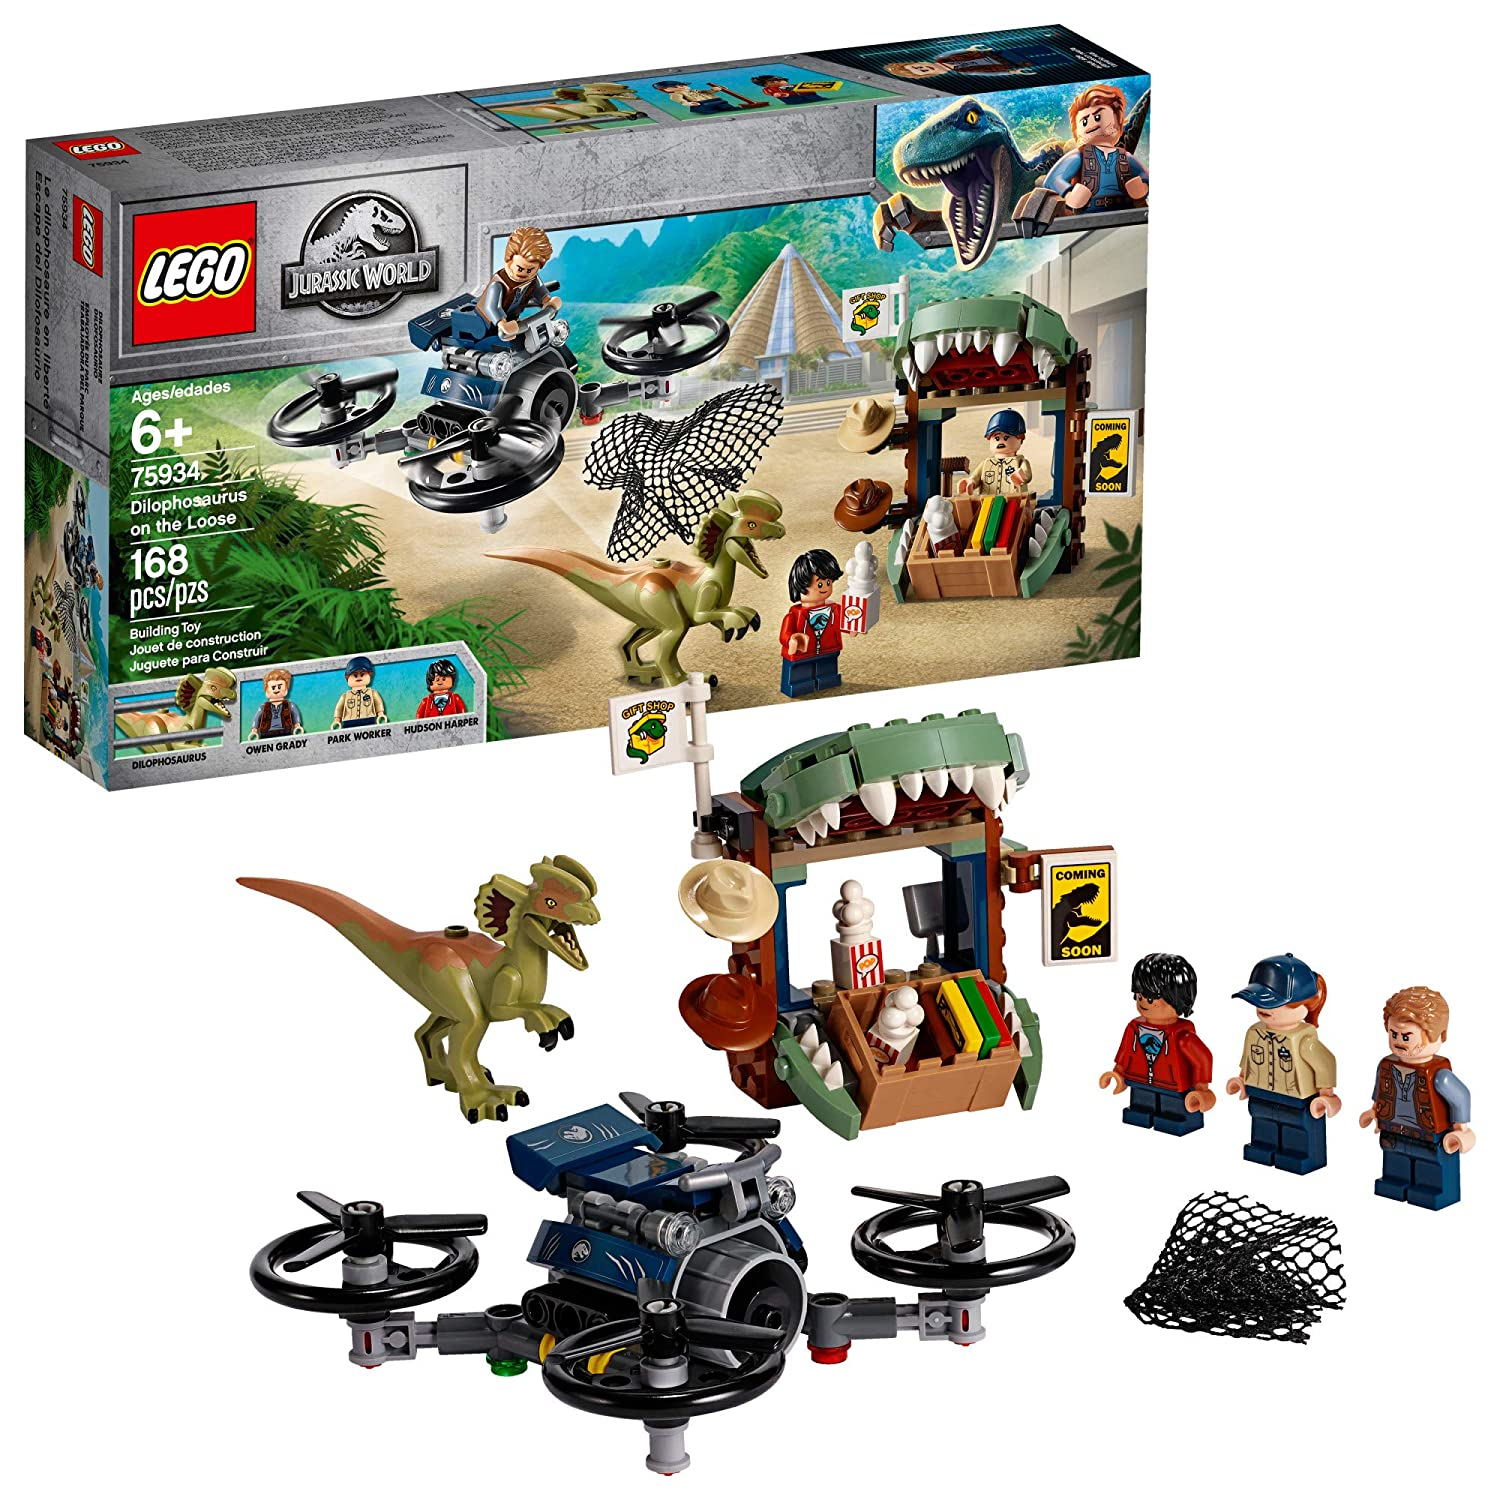 Top 9 Best Lego Jurassic Park Sets Reviews in 2020 2